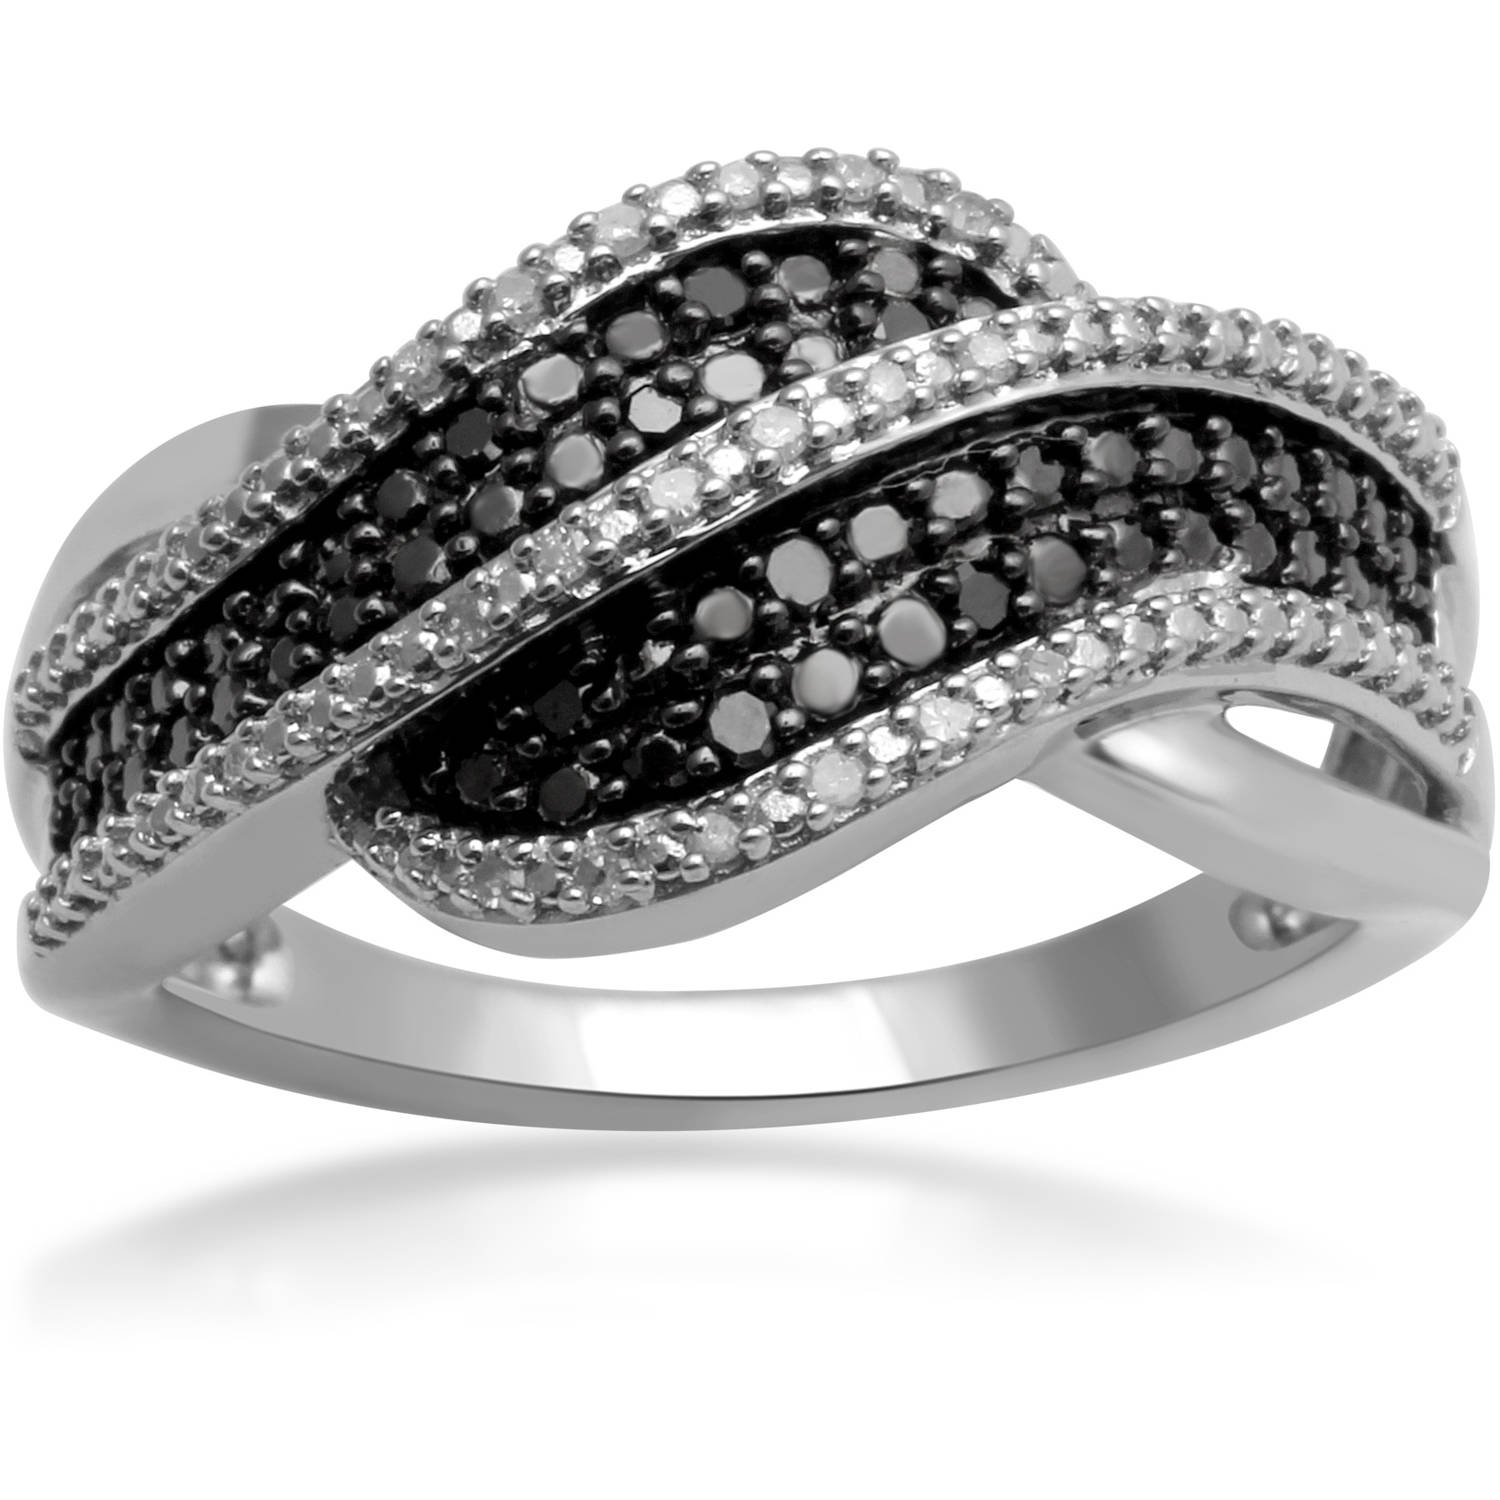 1/10 Carat T.W. White and Black Diamond Sterling Silver Fashion Ring